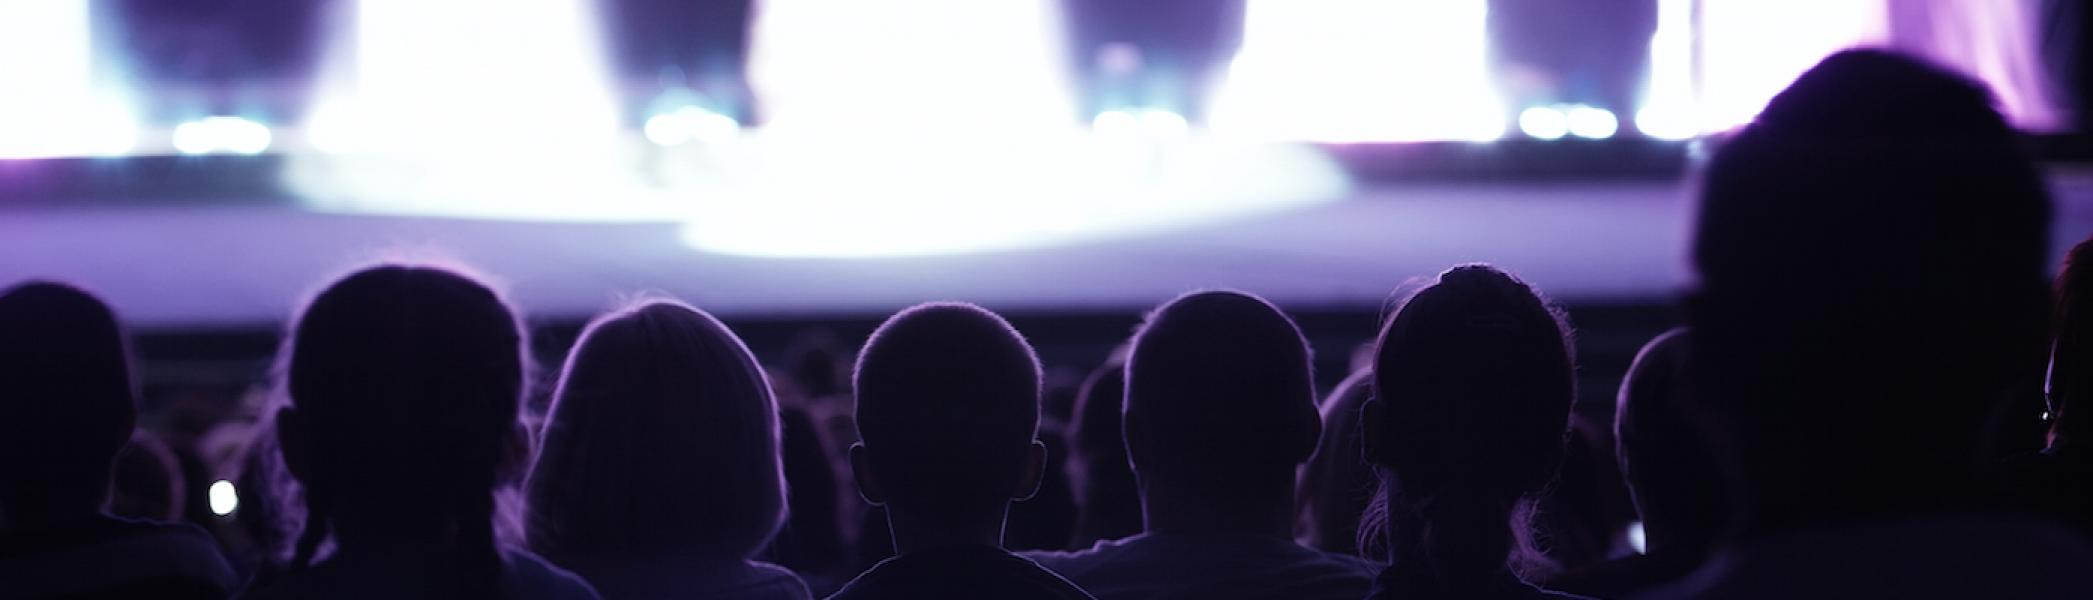 The view of a stage with bright lights from behind a row of people in a theatre.